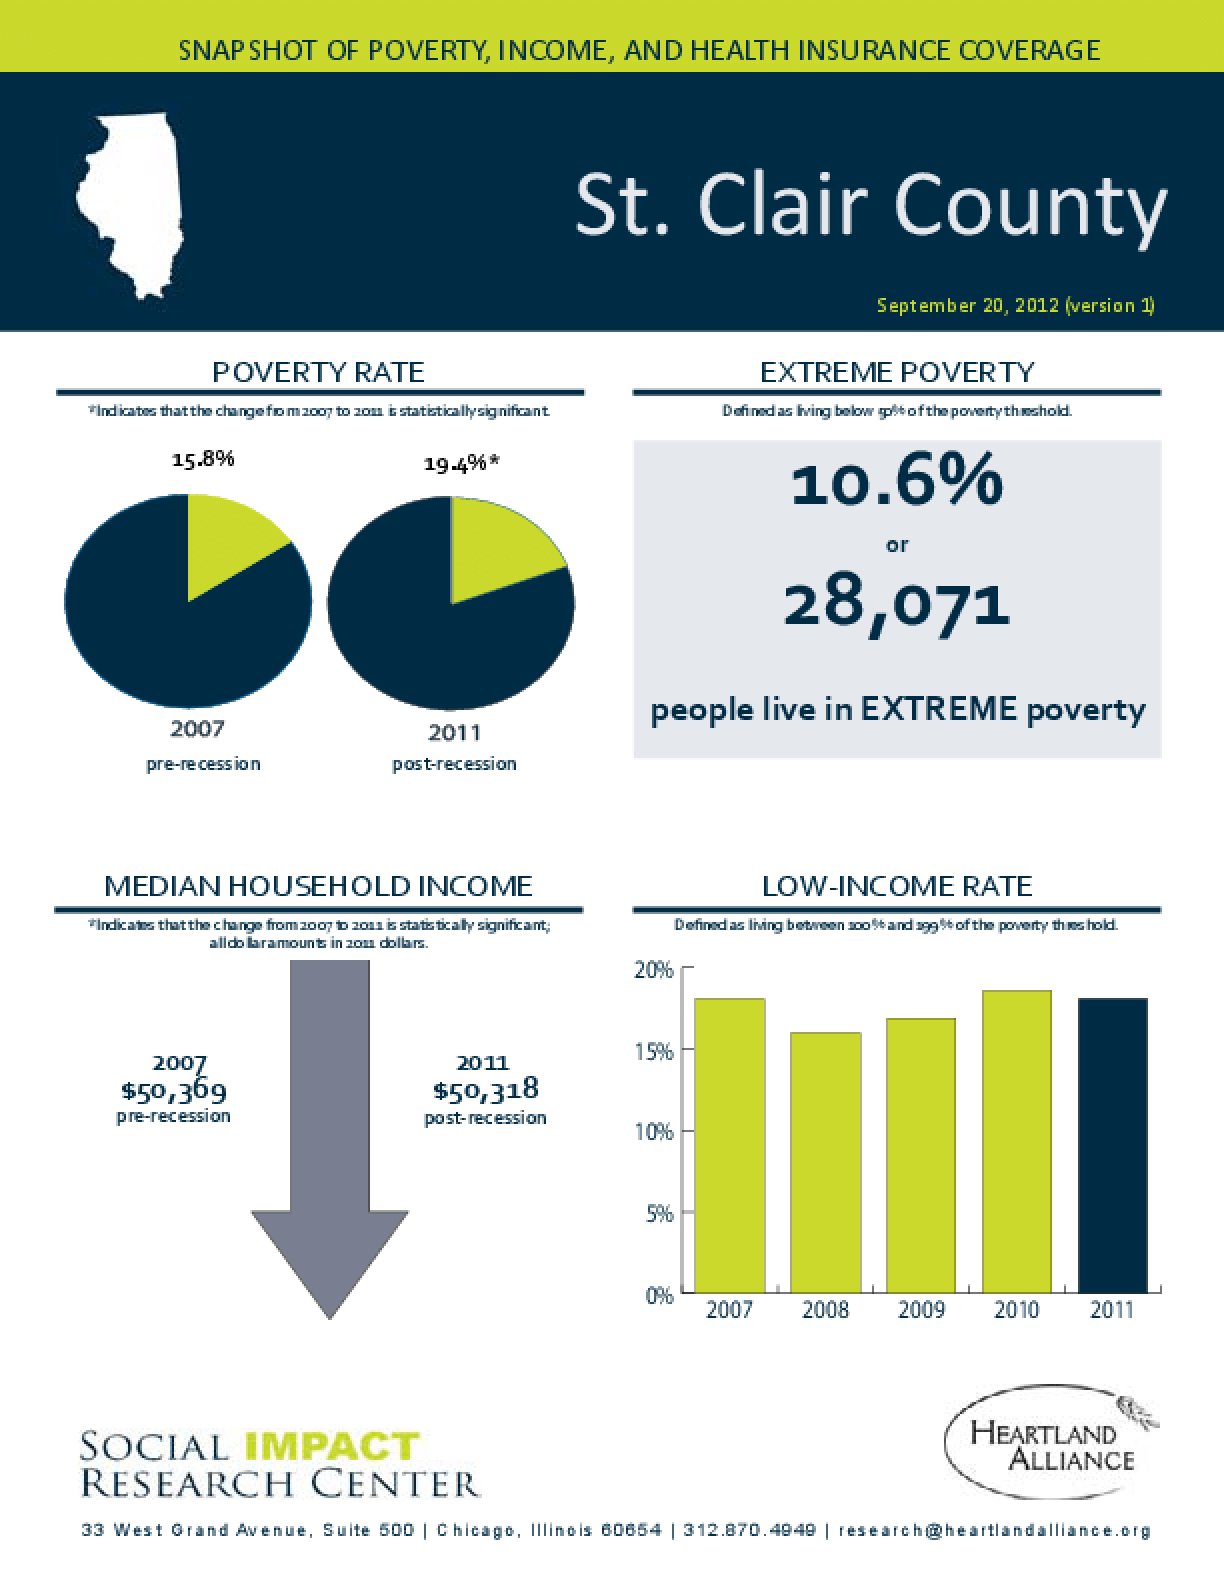 St. Clair County: Snapshot of Poverty, Income, and Health Insurance Coverage - 2011